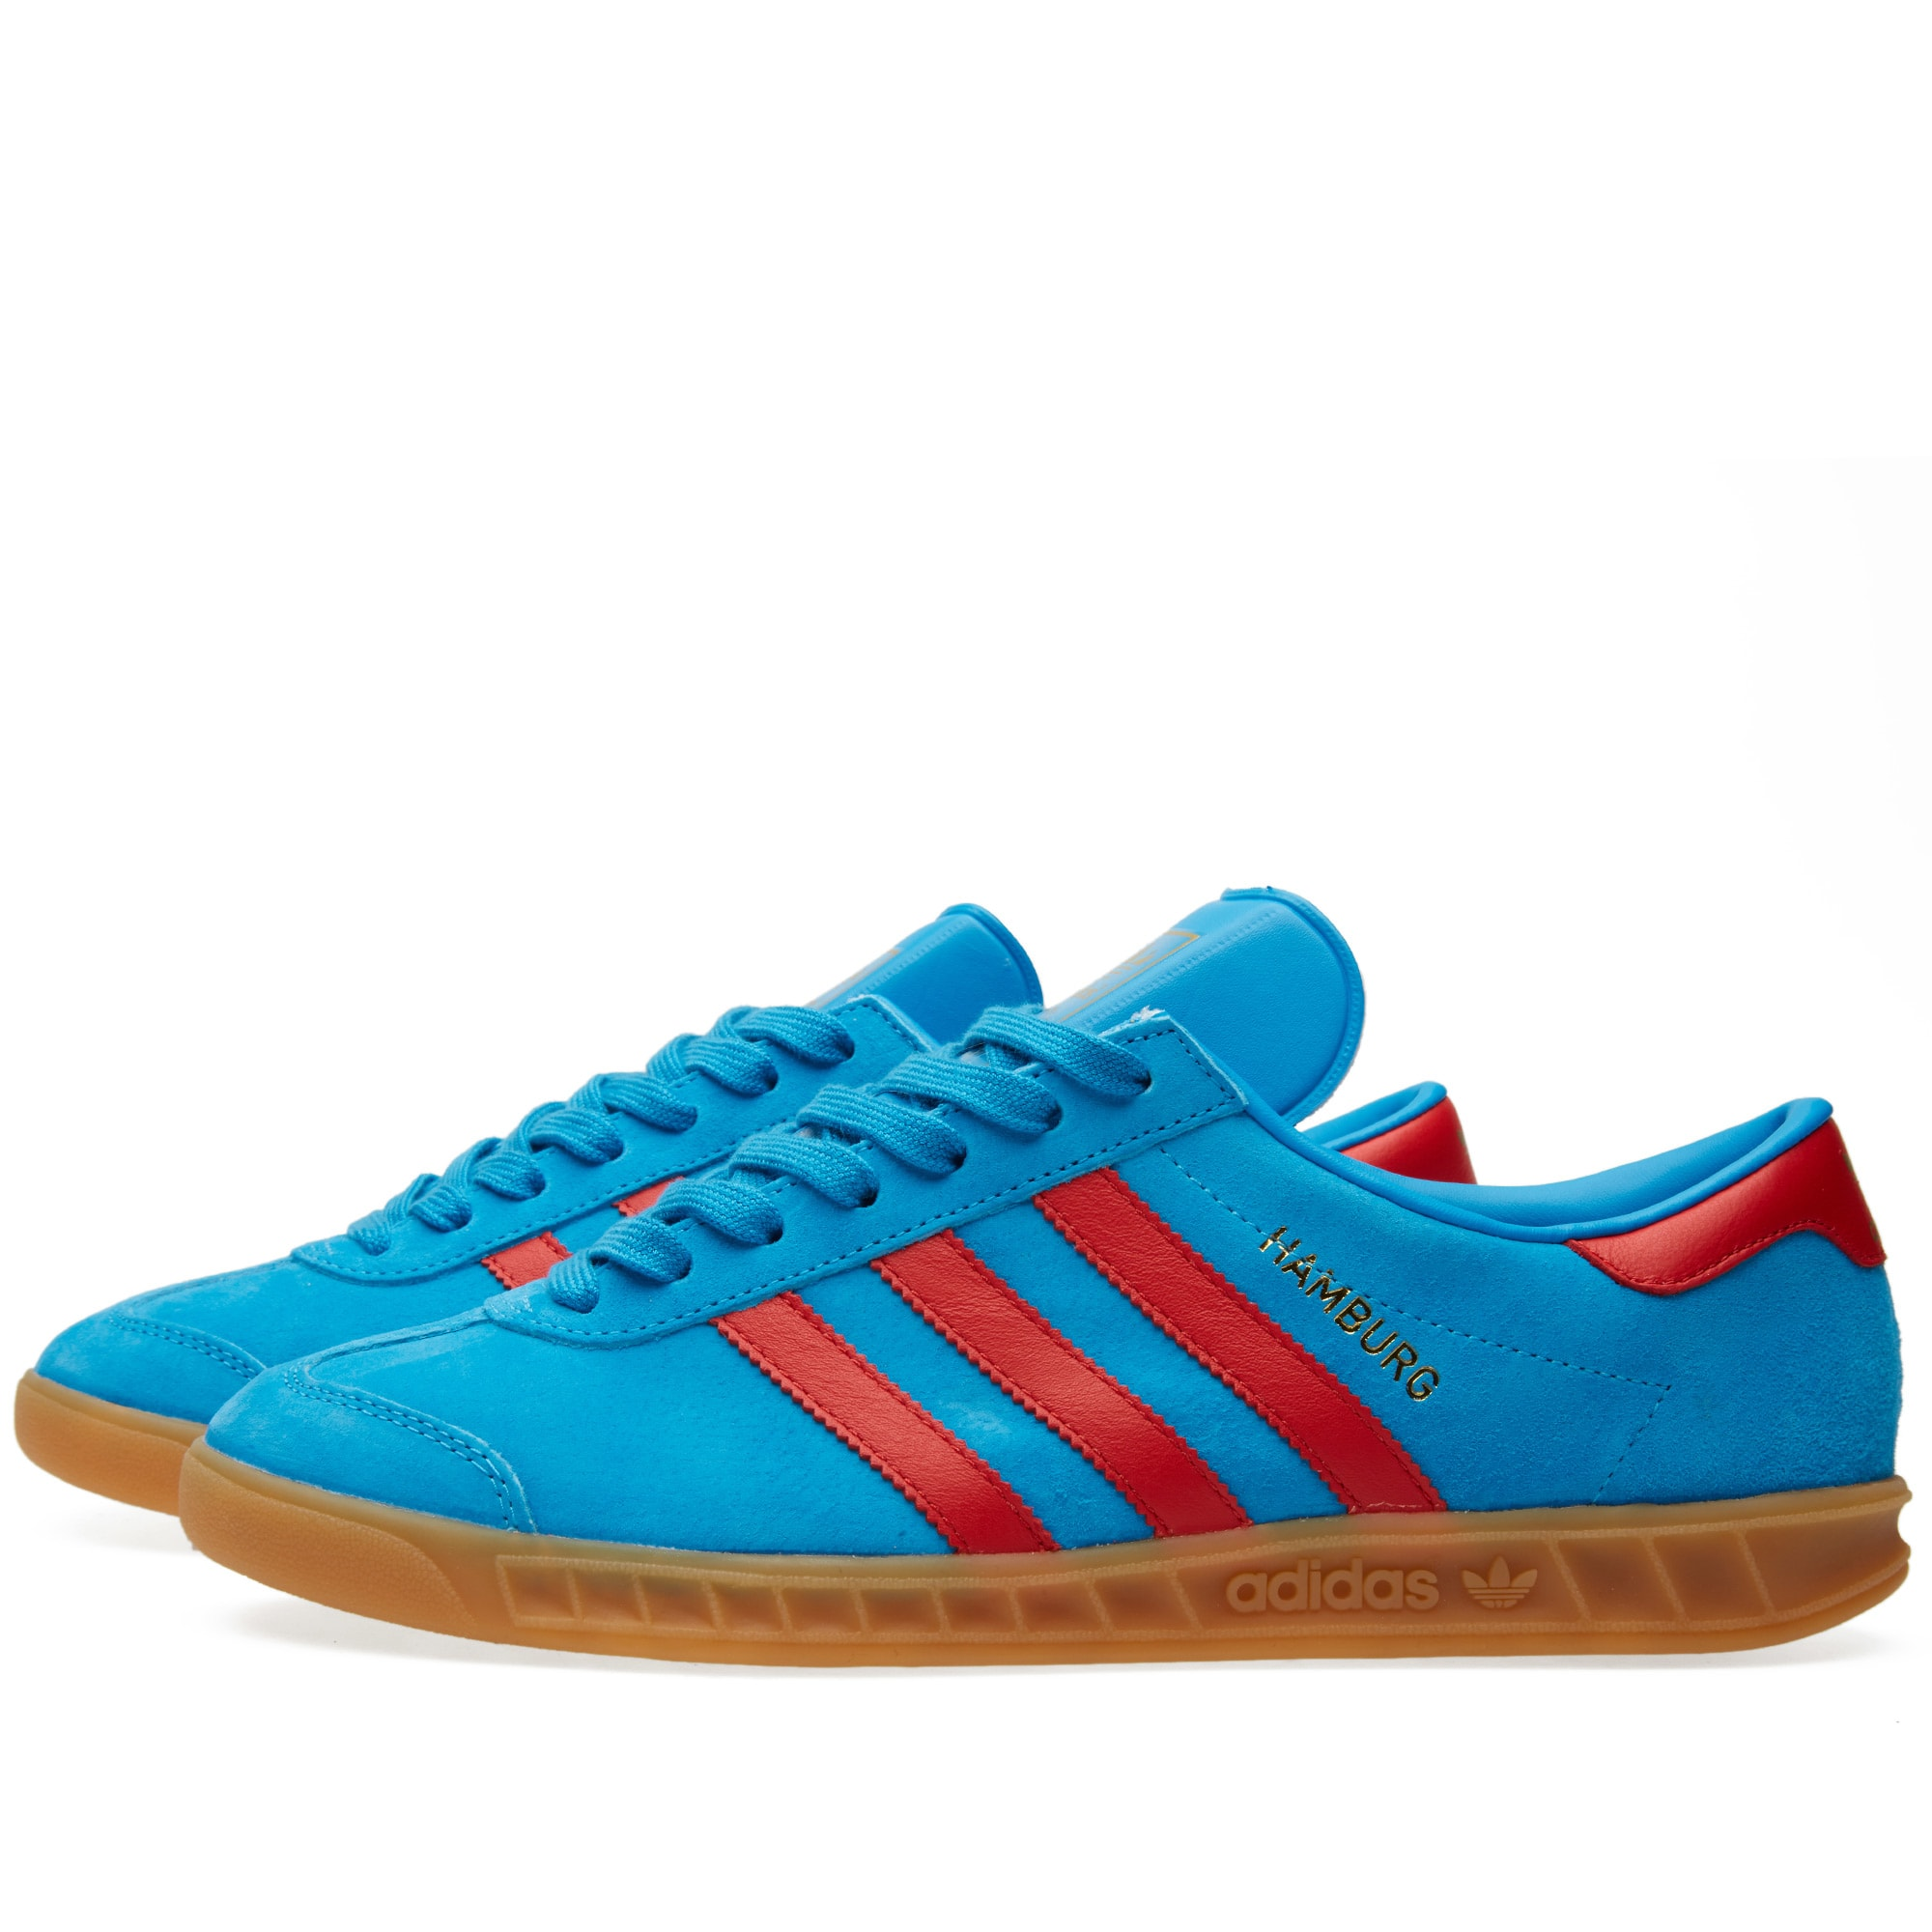 repetir alojamiento financiero  adidas hamburg blue and red